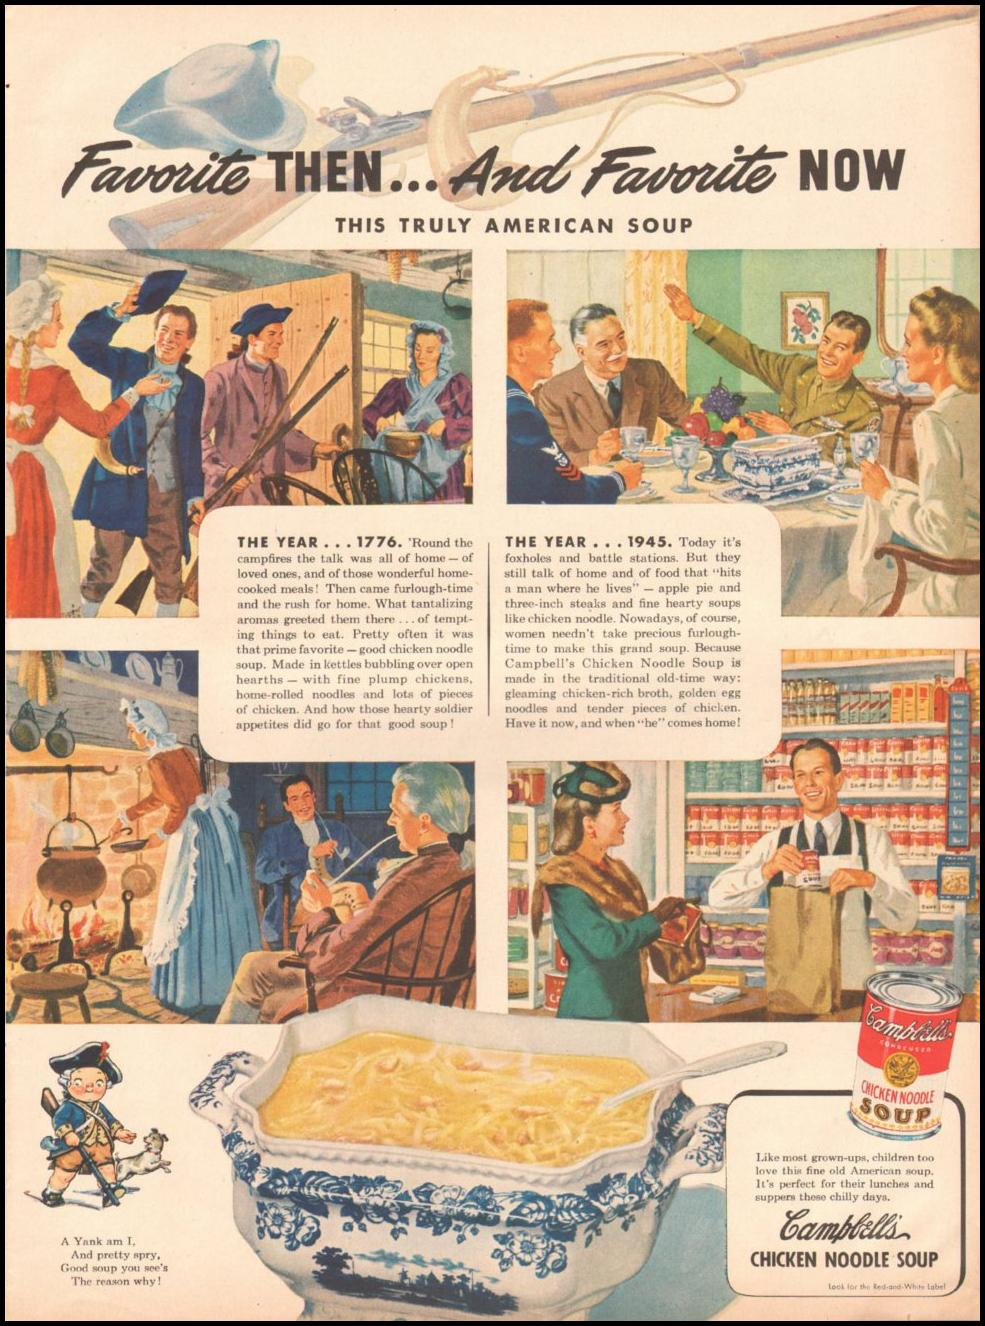 CAMPBELL'S CHICKEN NOODLE SOUP LIFE 03/12/1945